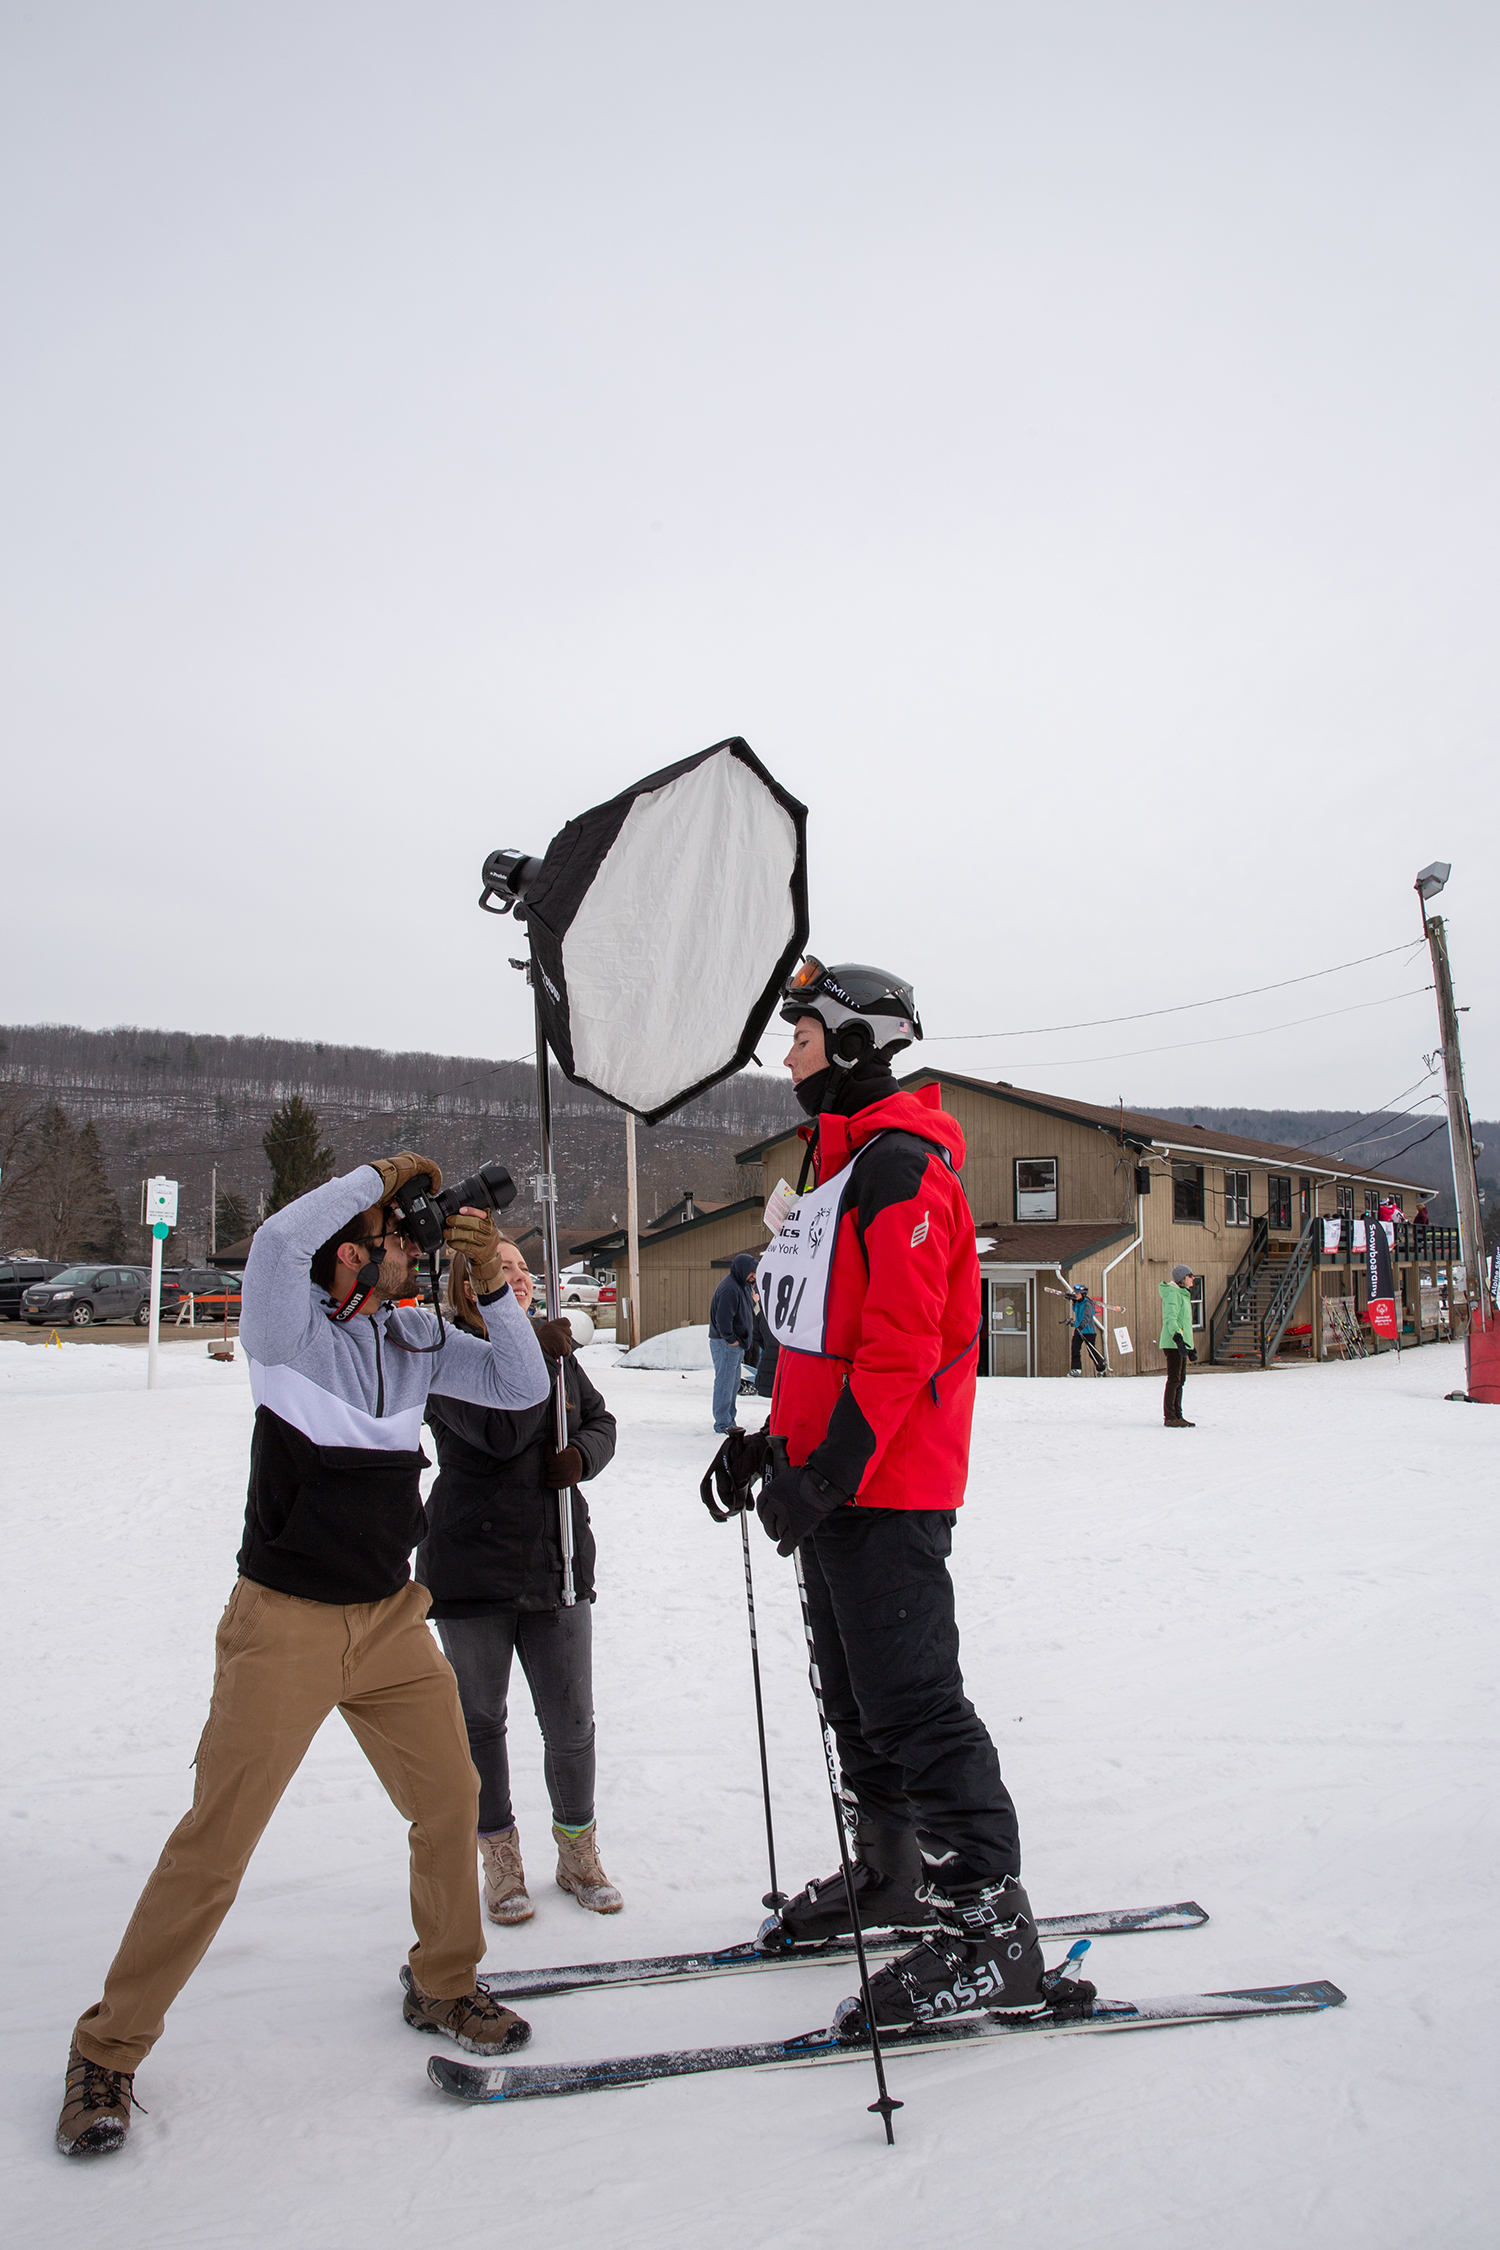 Students take a portrait on the ski slopes